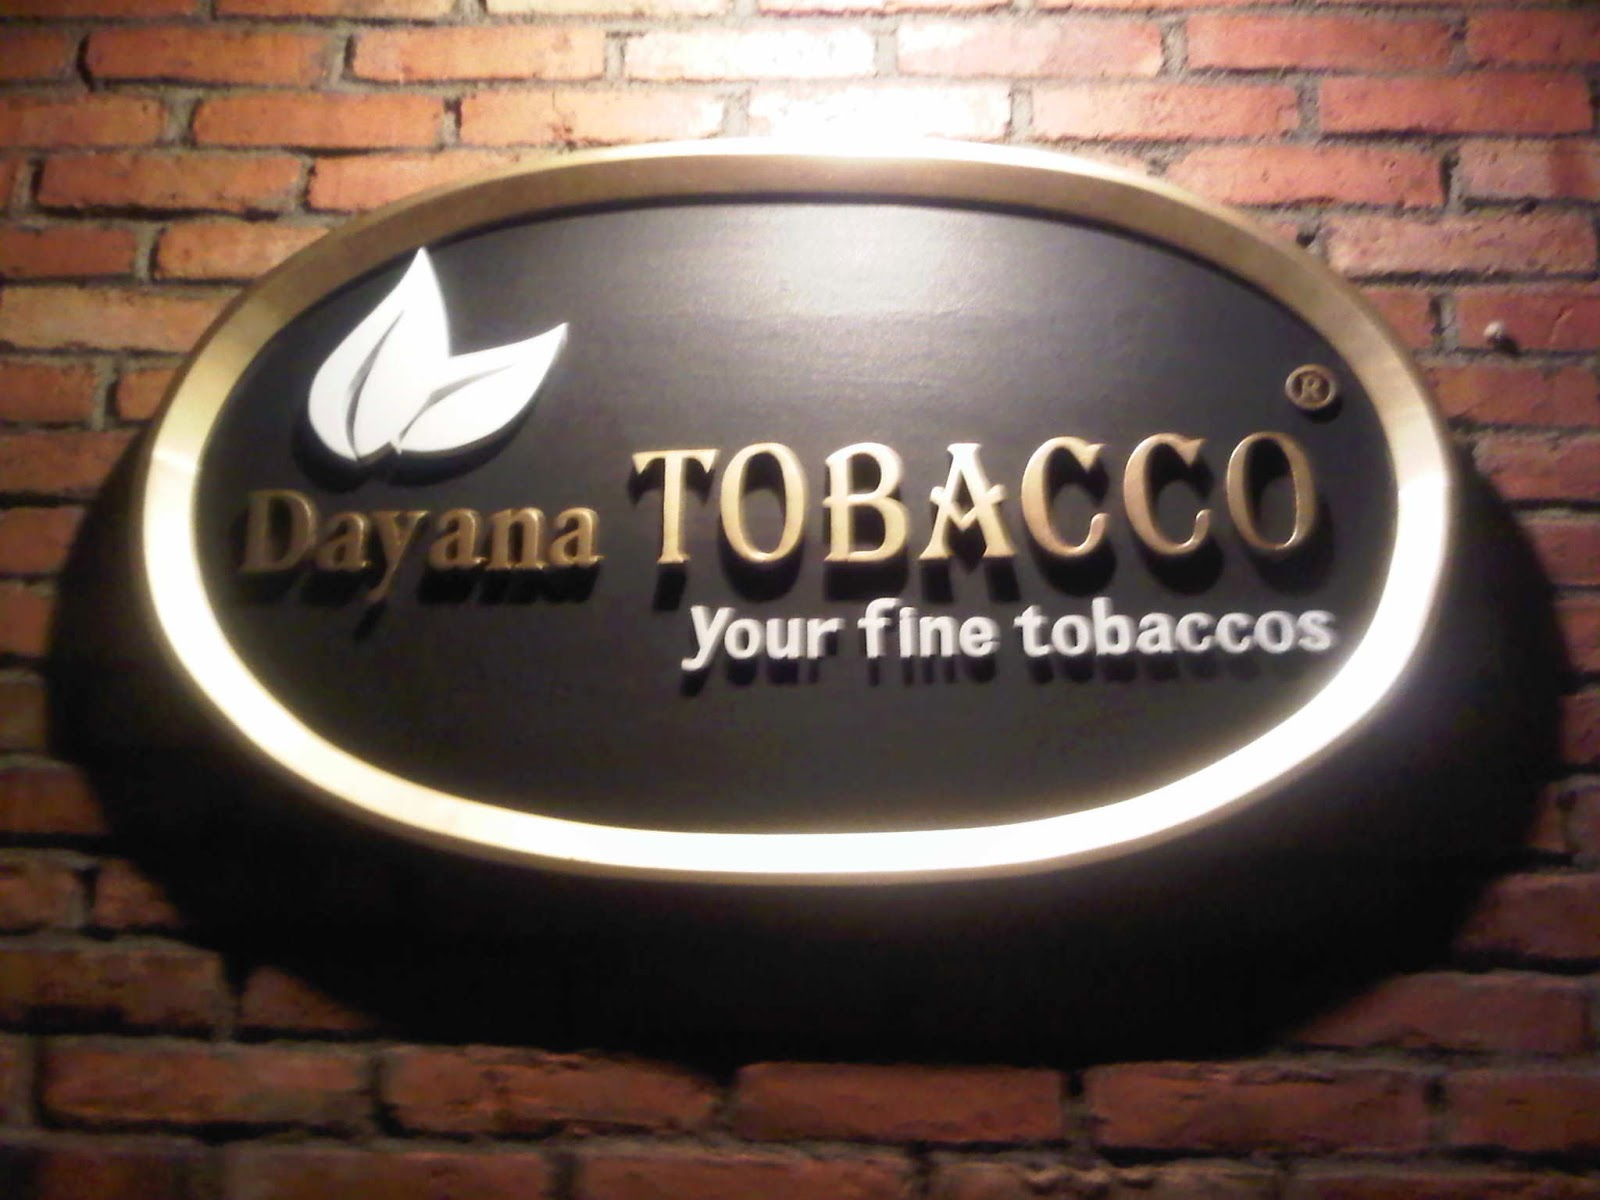 Image result for dayana tobacco